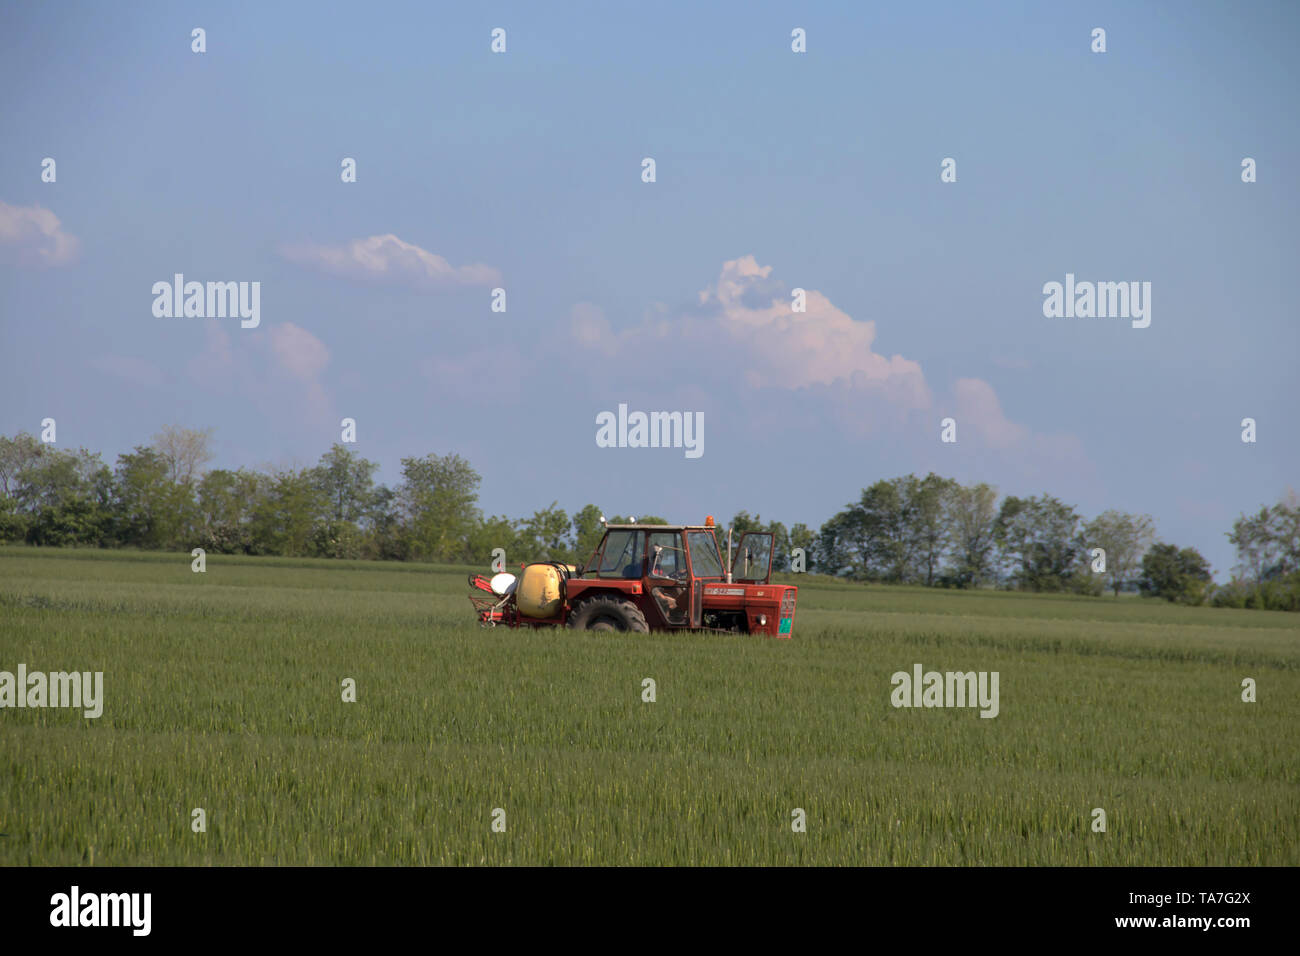 Red tractor in agricultural fields of Vojvodina (Serbia), near city of Zrenjanin - Stock Image